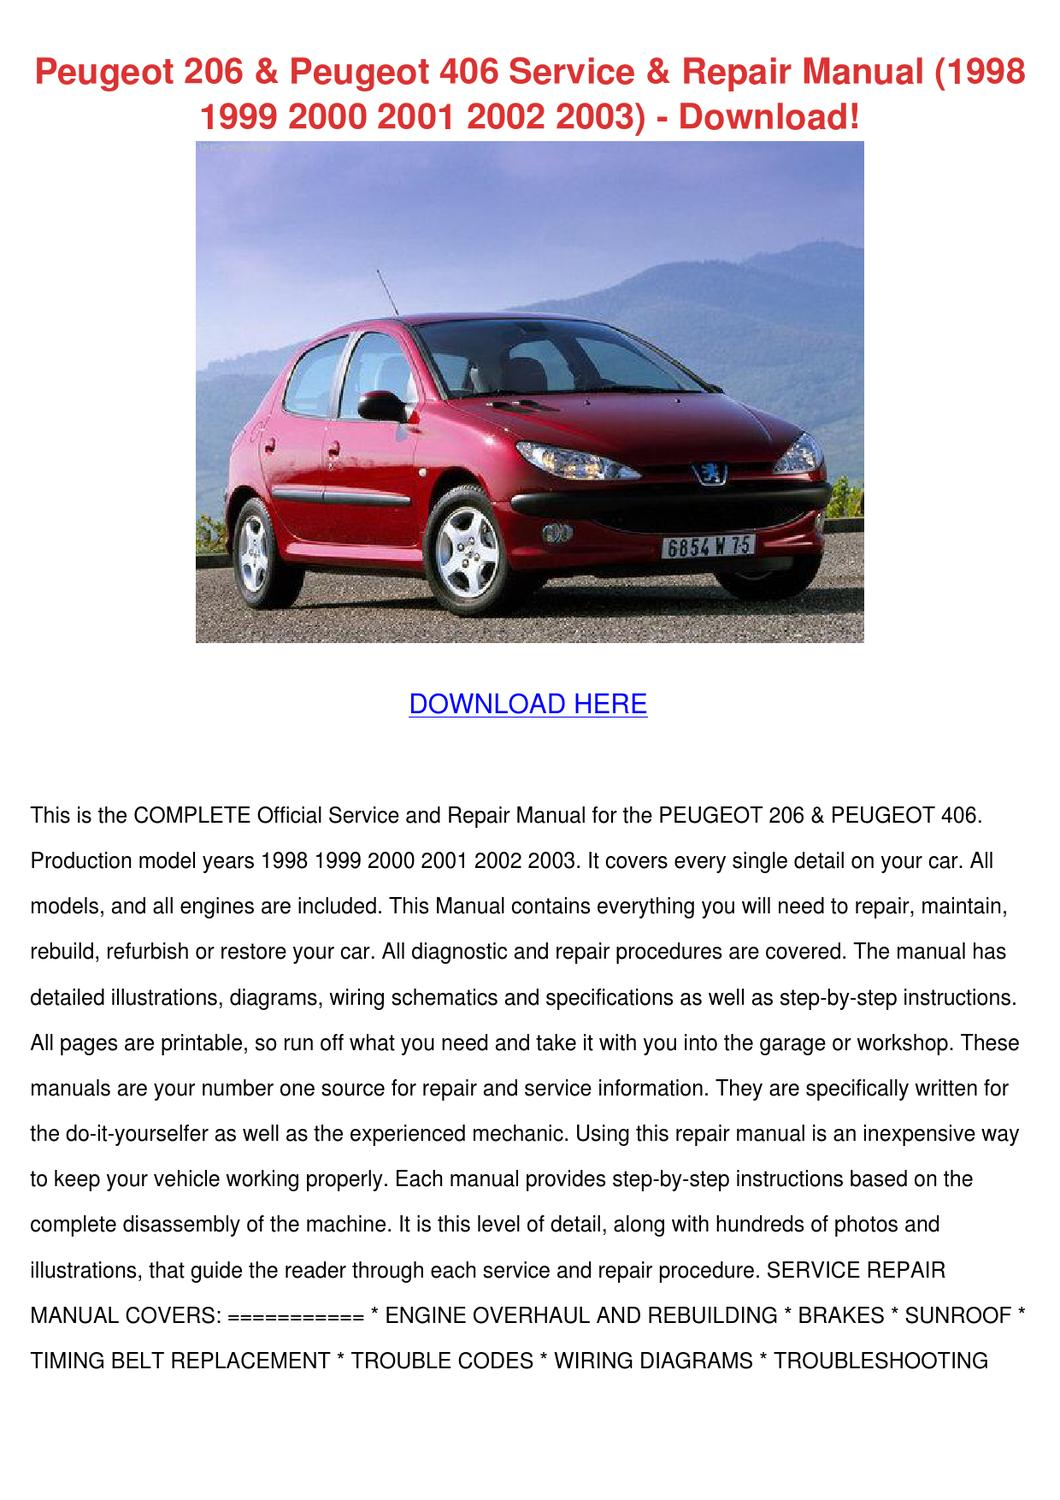 Peugeot 206 Peugeot 406 Service Repair Manual by JeannetteHammond - issuu